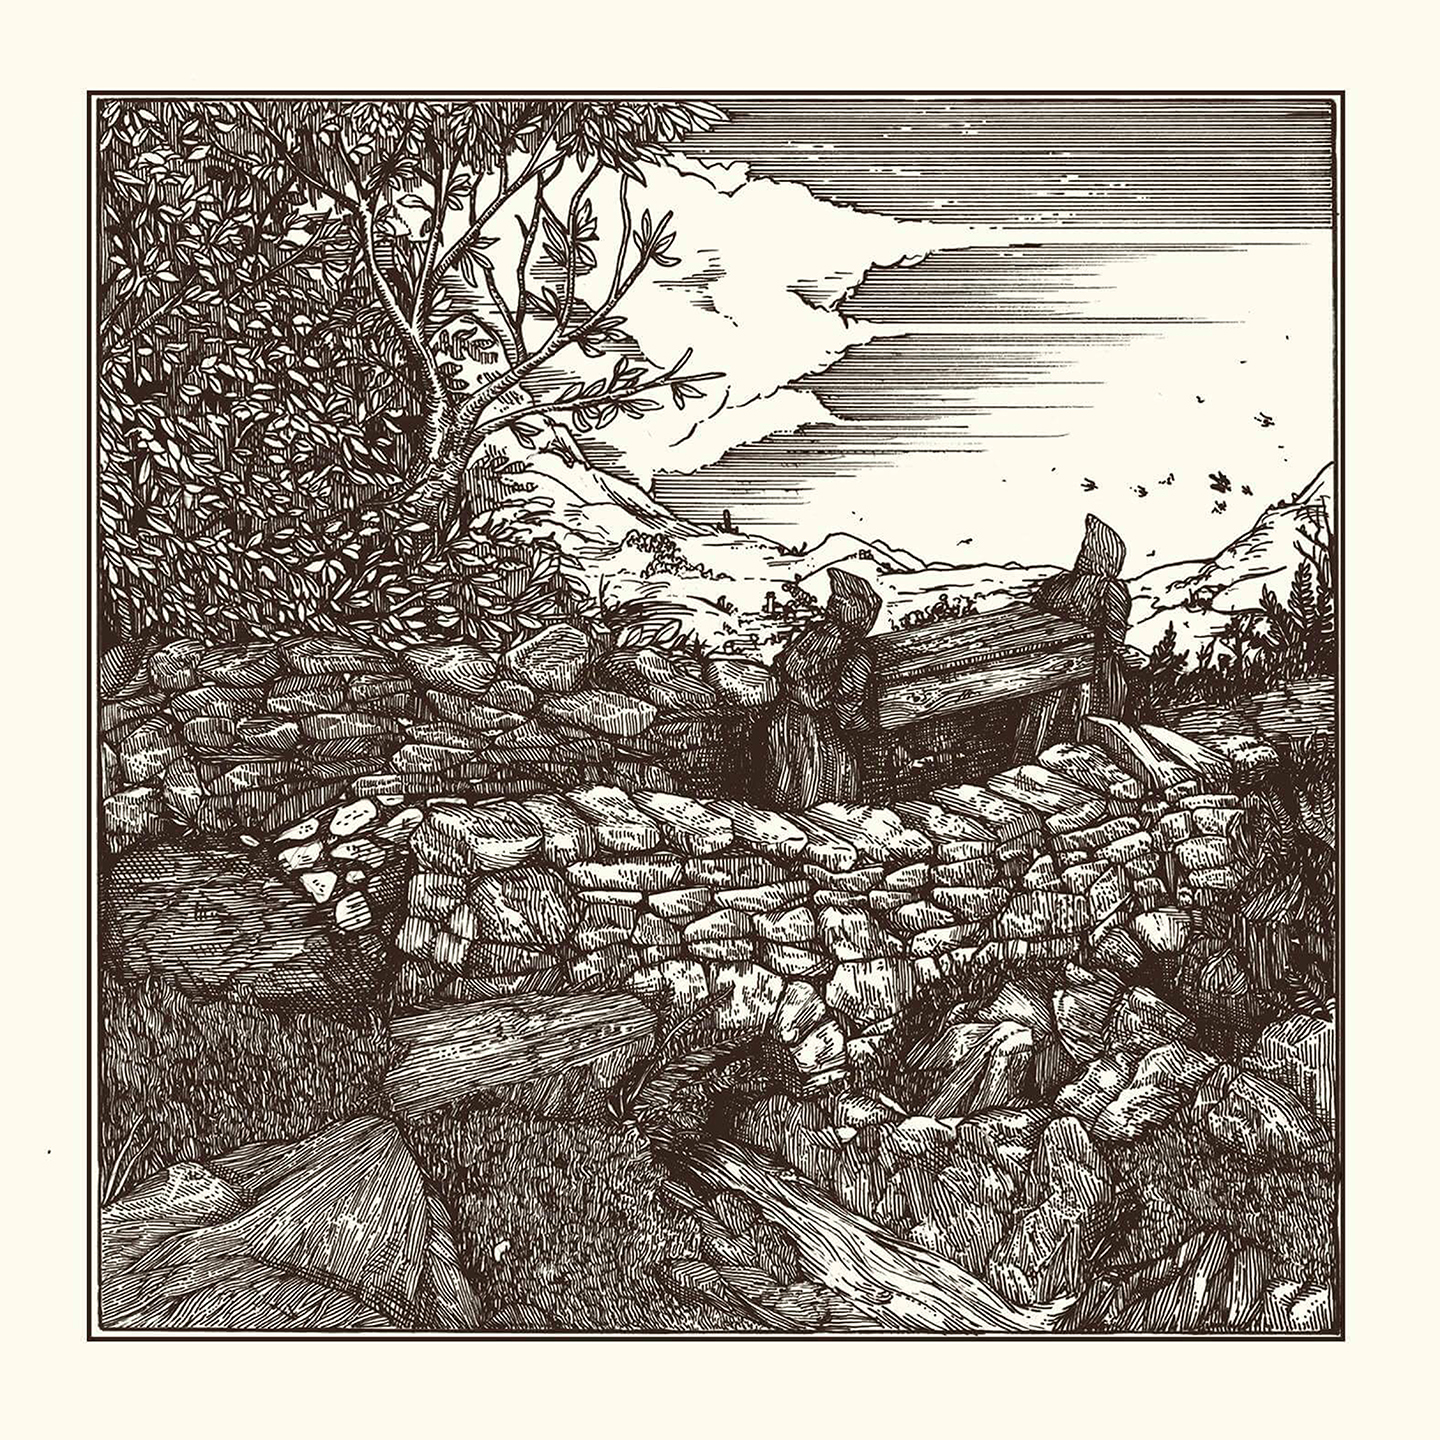 Mire tracklisting  1) Choke 2) Hollow 3) Thankless 4) Retch 5) The Mire 6) Of Flesh Weaker Than Ash 7) Hadal